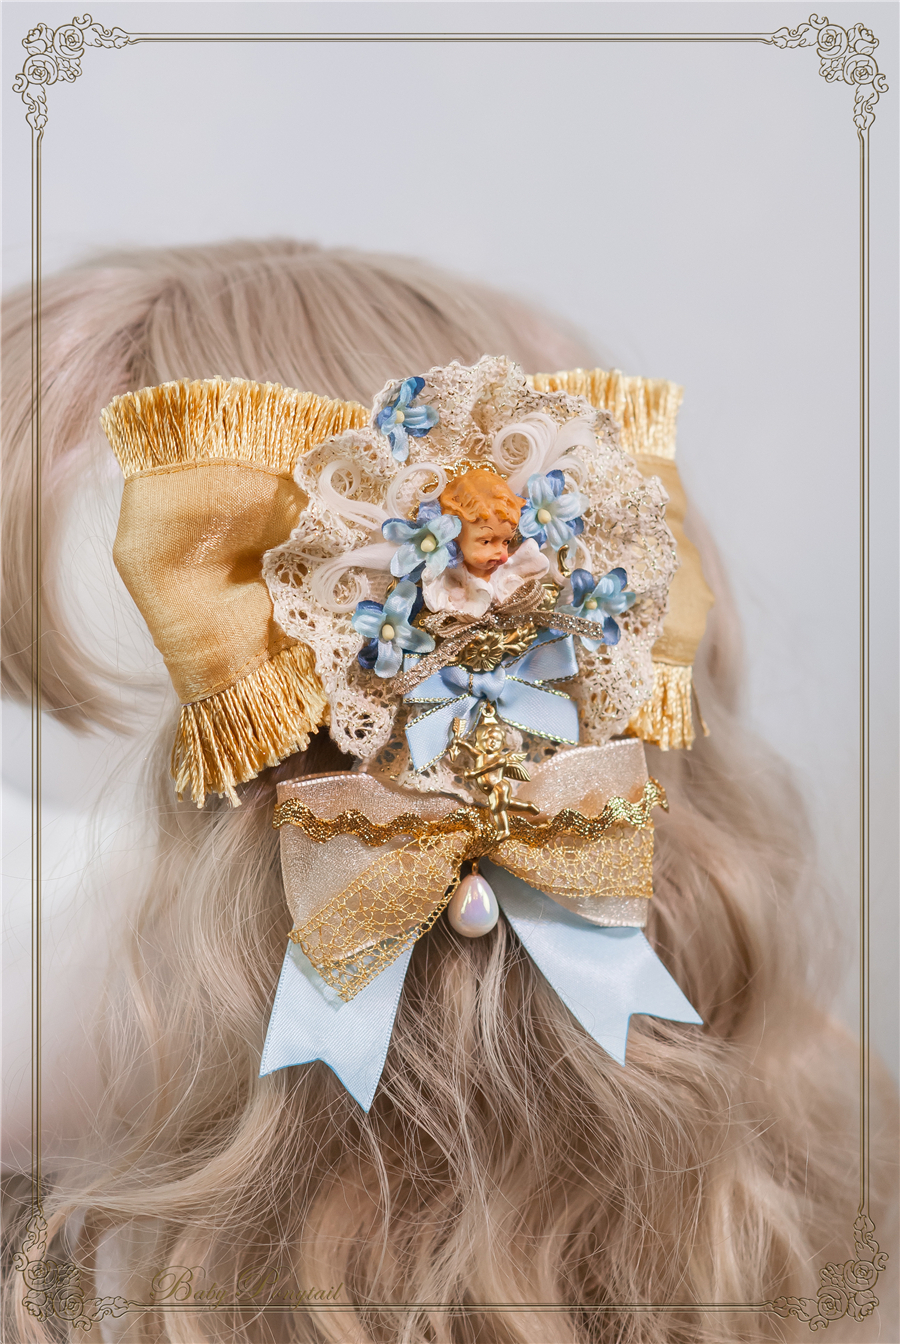 Baby Ponytail_Stock photo_Circus Princess_Angel Brooch Sax02.jpg